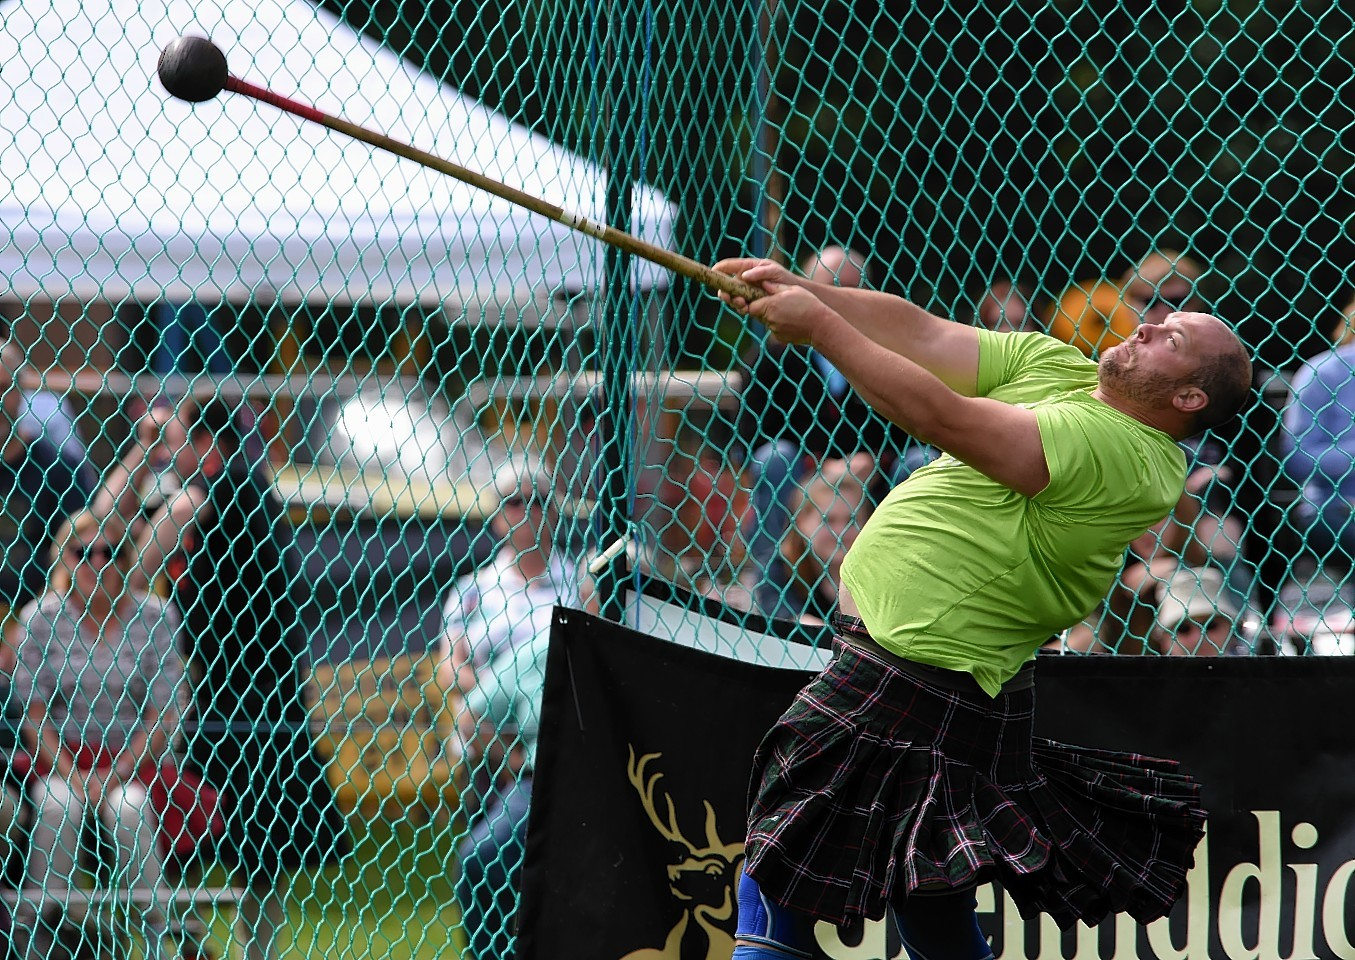 Rob Young at the hammer  at Aboyne Highland Games. Credit: Kenny Elrick.